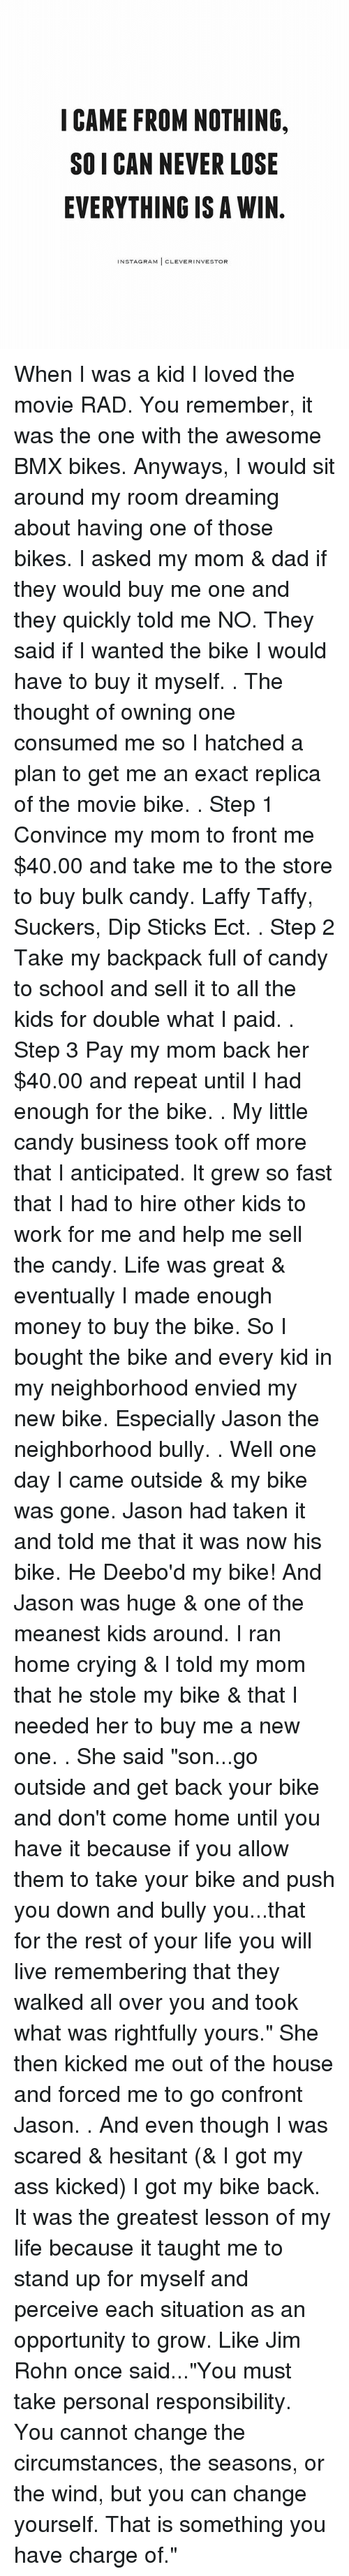 "Ass, Candy, and Crying: I CAME FROM NOTHING.  SO I CAN NEVER LOSE  EVERYTHING IS A WIN  NSTAGRAM  CLEVERINVESTOR When I was a kid I loved the movie RAD. You remember, it was the one with the awesome BMX bikes. Anyways, I would sit around my room dreaming about having one of those bikes. I asked my mom & dad if they would buy me one and they quickly told me NO. They said if I wanted the bike I would have to buy it myself. . The thought of owning one consumed me so I hatched a plan to get me an exact replica of the movie bike. . Step 1 Convince my mom to front me $40.00 and take me to the store to buy bulk candy. Laffy Taffy, Suckers, Dip Sticks Ect. . Step 2 Take my backpack full of candy to school and sell it to all the kids for double what I paid. . Step 3 Pay my mom back her $40.00 and repeat until I had enough for the bike. . My little candy business took off more that I anticipated. It grew so fast that I had to hire other kids to work for me and help me sell the candy. Life was great & eventually I made enough money to buy the bike. So I bought the bike and every kid in my neighborhood envied my new bike. Especially Jason the neighborhood bully. . Well one day I came outside & my bike was gone. Jason had taken it and told me that it was now his bike. He Deebo'd my bike! And Jason was huge & one of the meanest kids around. I ran home crying & I told my mom that he stole my bike & that I needed her to buy me a new one. . She said ""son...go outside and get back your bike and don't come home until you have it because if you allow them to take your bike and push you down and bully you...that for the rest of your life you will live remembering that they walked all over you and took what was rightfully yours."" She then kicked me out of the house and forced me to go confront Jason. . And even though I was scared & hesitant (& I got my ass kicked) I got my bike back. It was the greatest lesson of my life because it taught me to stand up for myself and perceive each situation as an opportunity to grow. Like Jim Rohn once said...""You must take personal responsibility. You cannot change the circumstances, the seasons, or the wind, but you can change yourself. That is something you have charge of."""